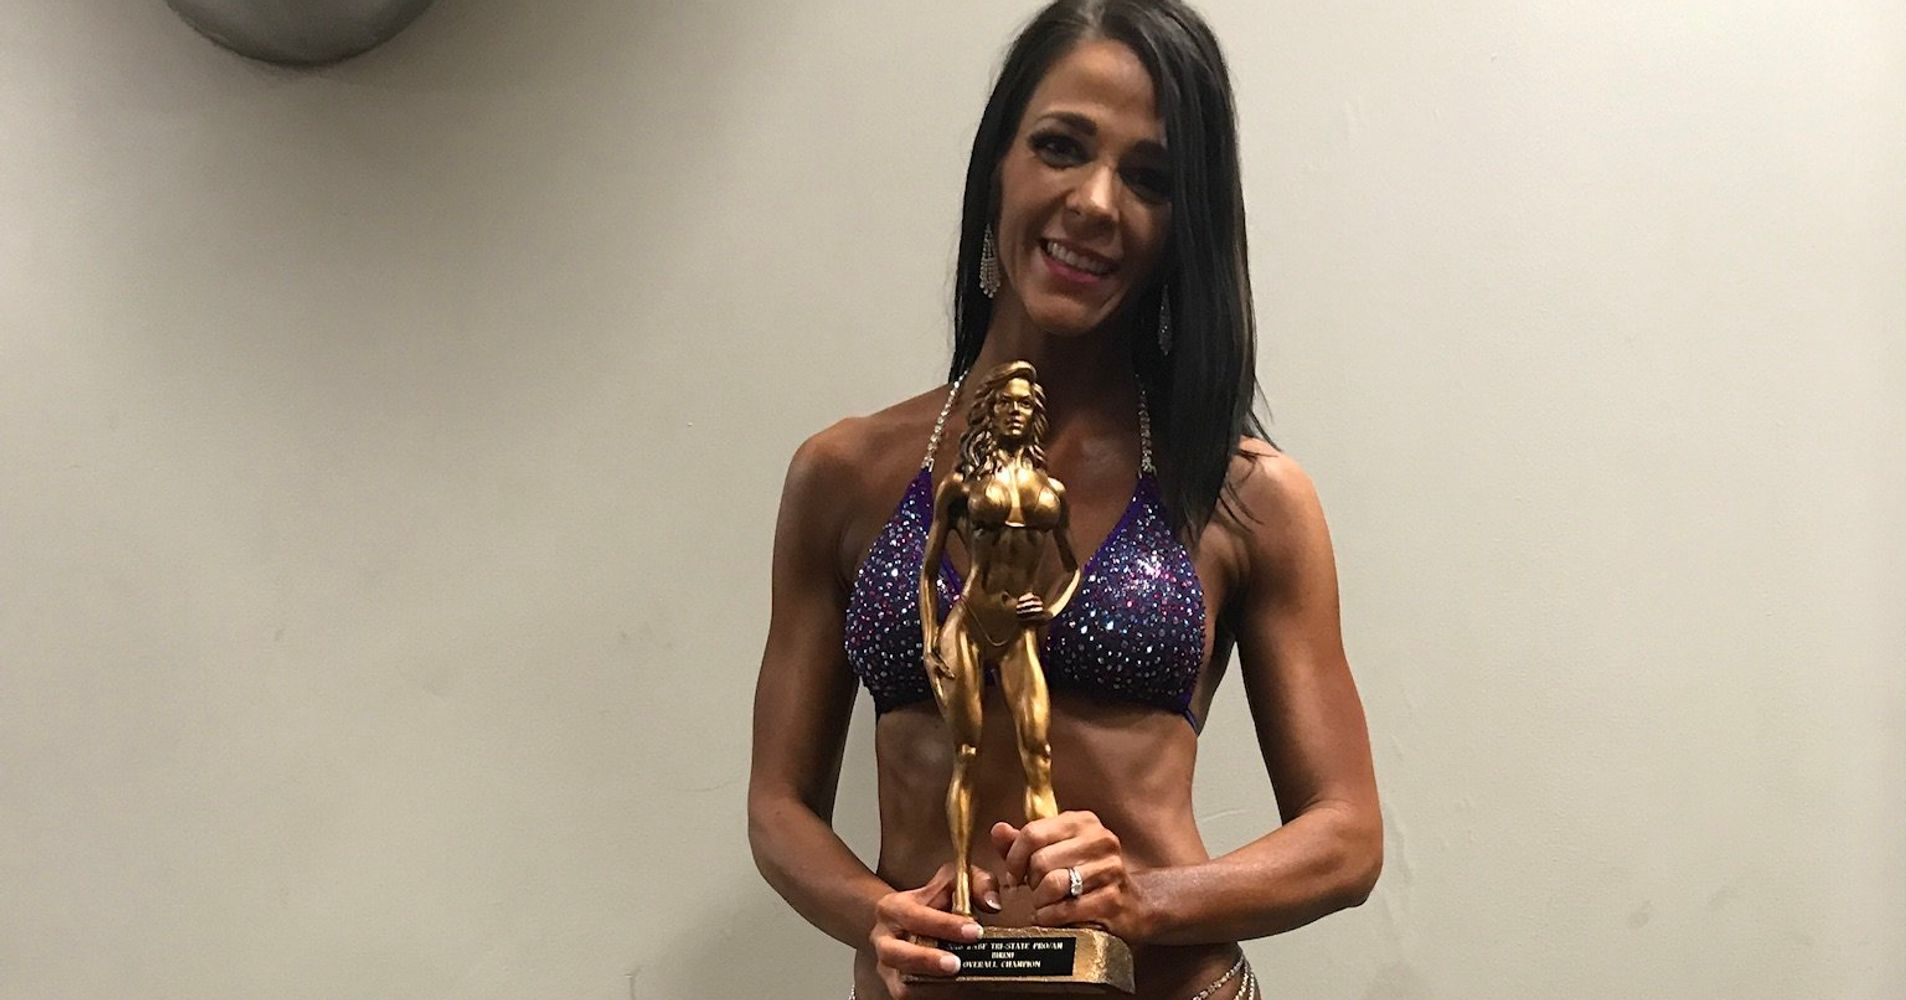 I Never Thought I'd Become A Bikini Competitor. Here's How It's Changed My Life.